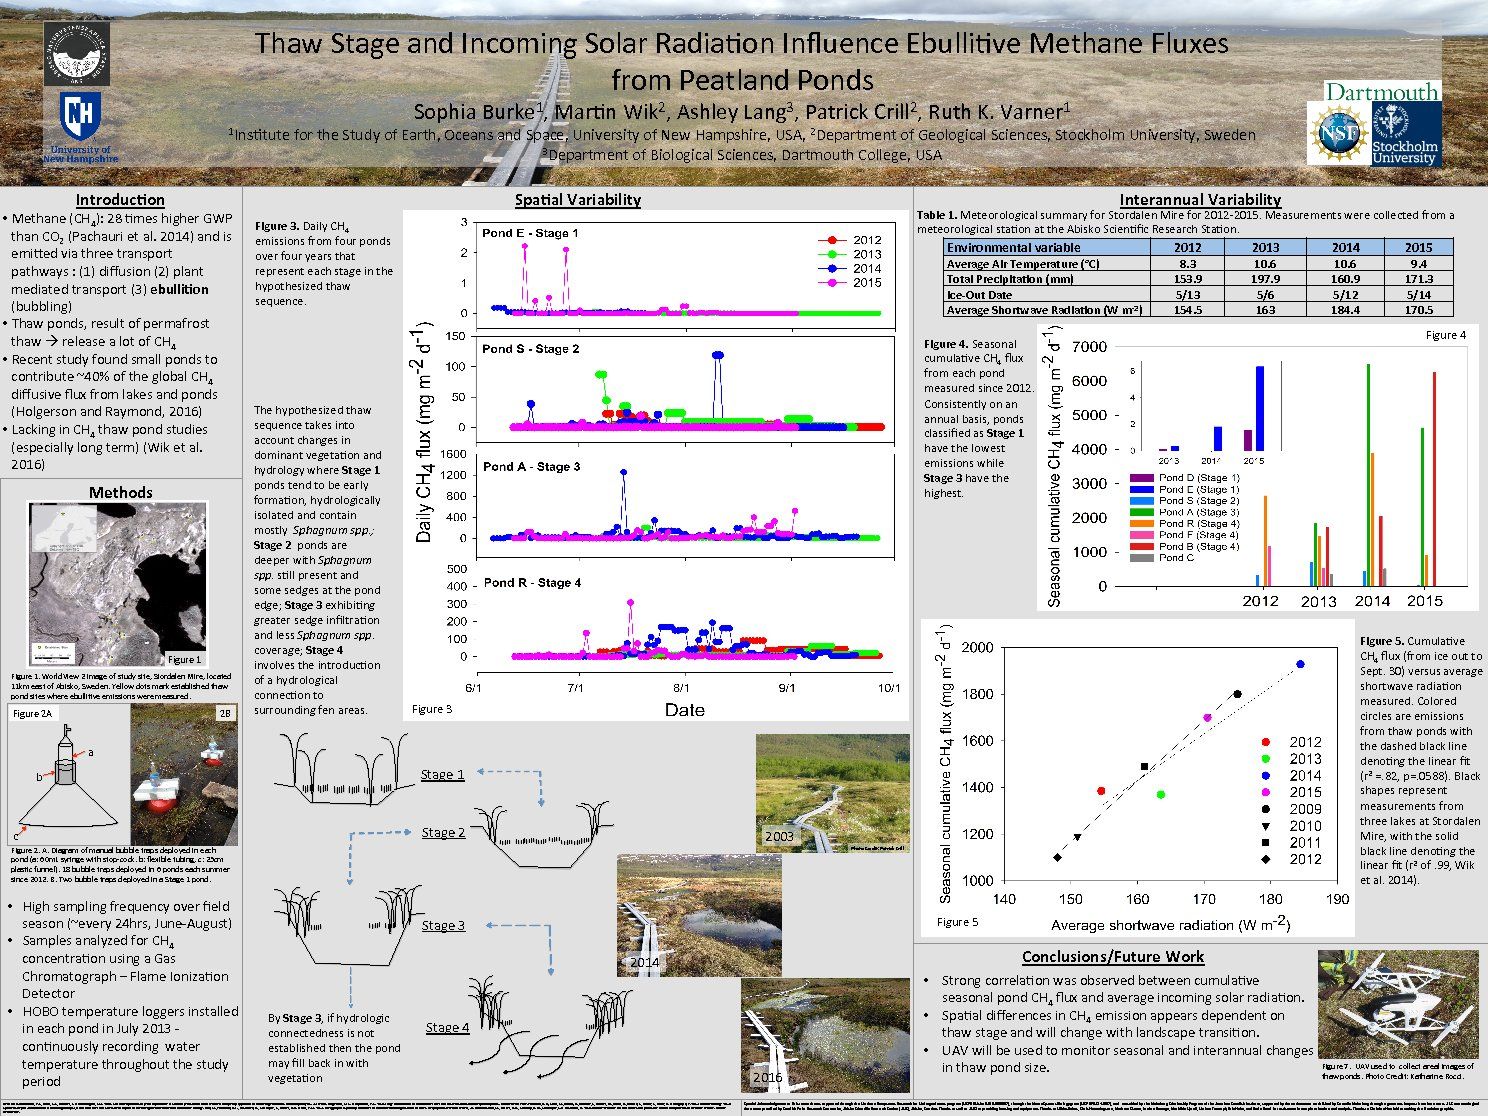 Thaw Stage And Incoming Solar Radiation Influence Ebullitive Methane Fluxes From Peatland Ponds by saj82